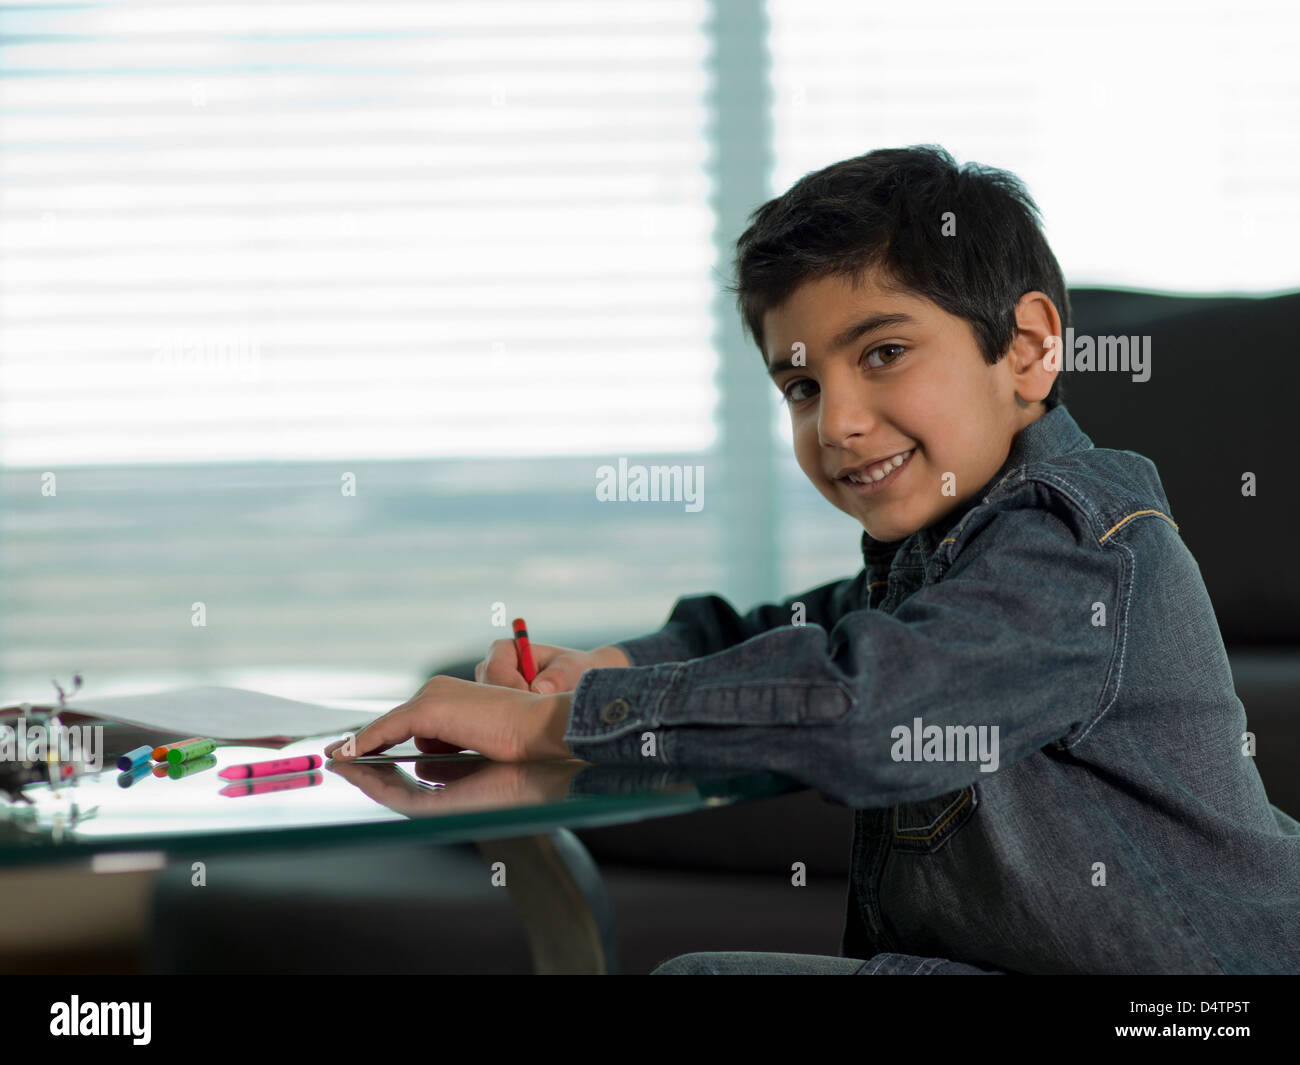 Boy Coloring With Crayons At Desk